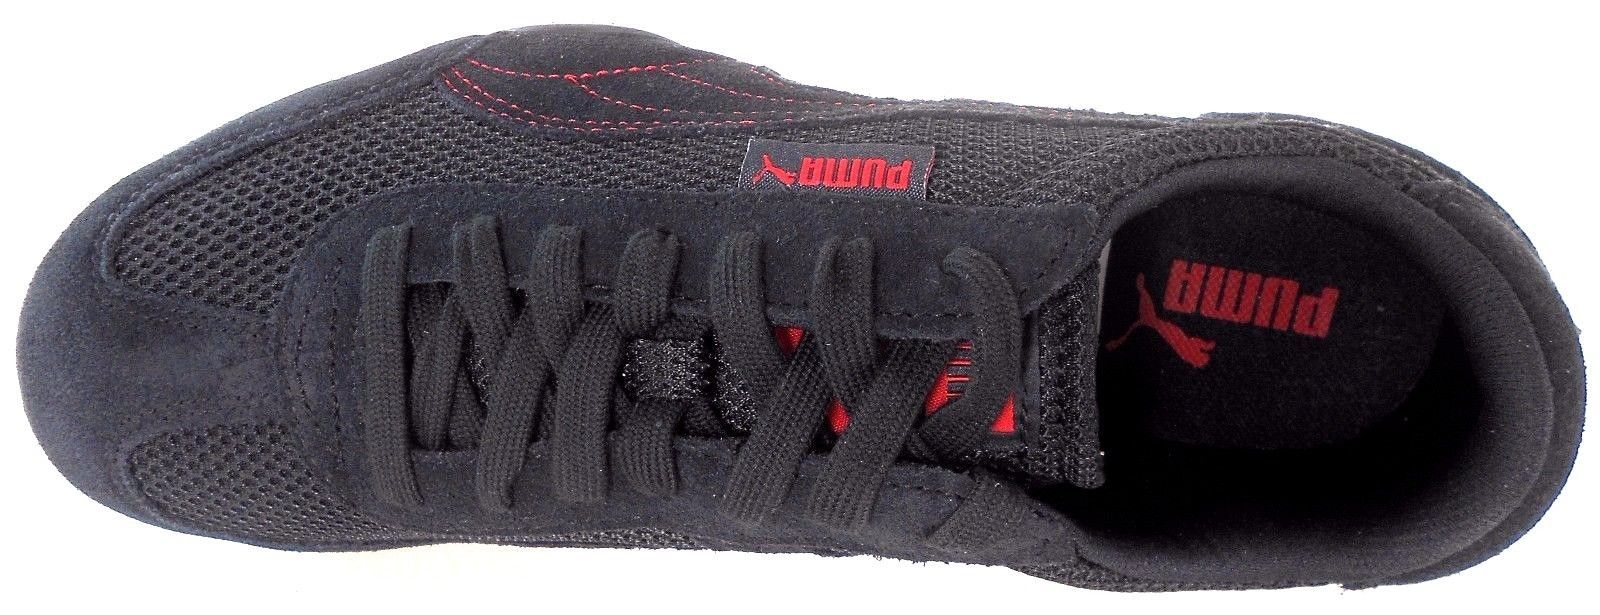 d91130c628a Puma 76 Runner Mesh Men s BLACK RED Shoes and 50 similar items